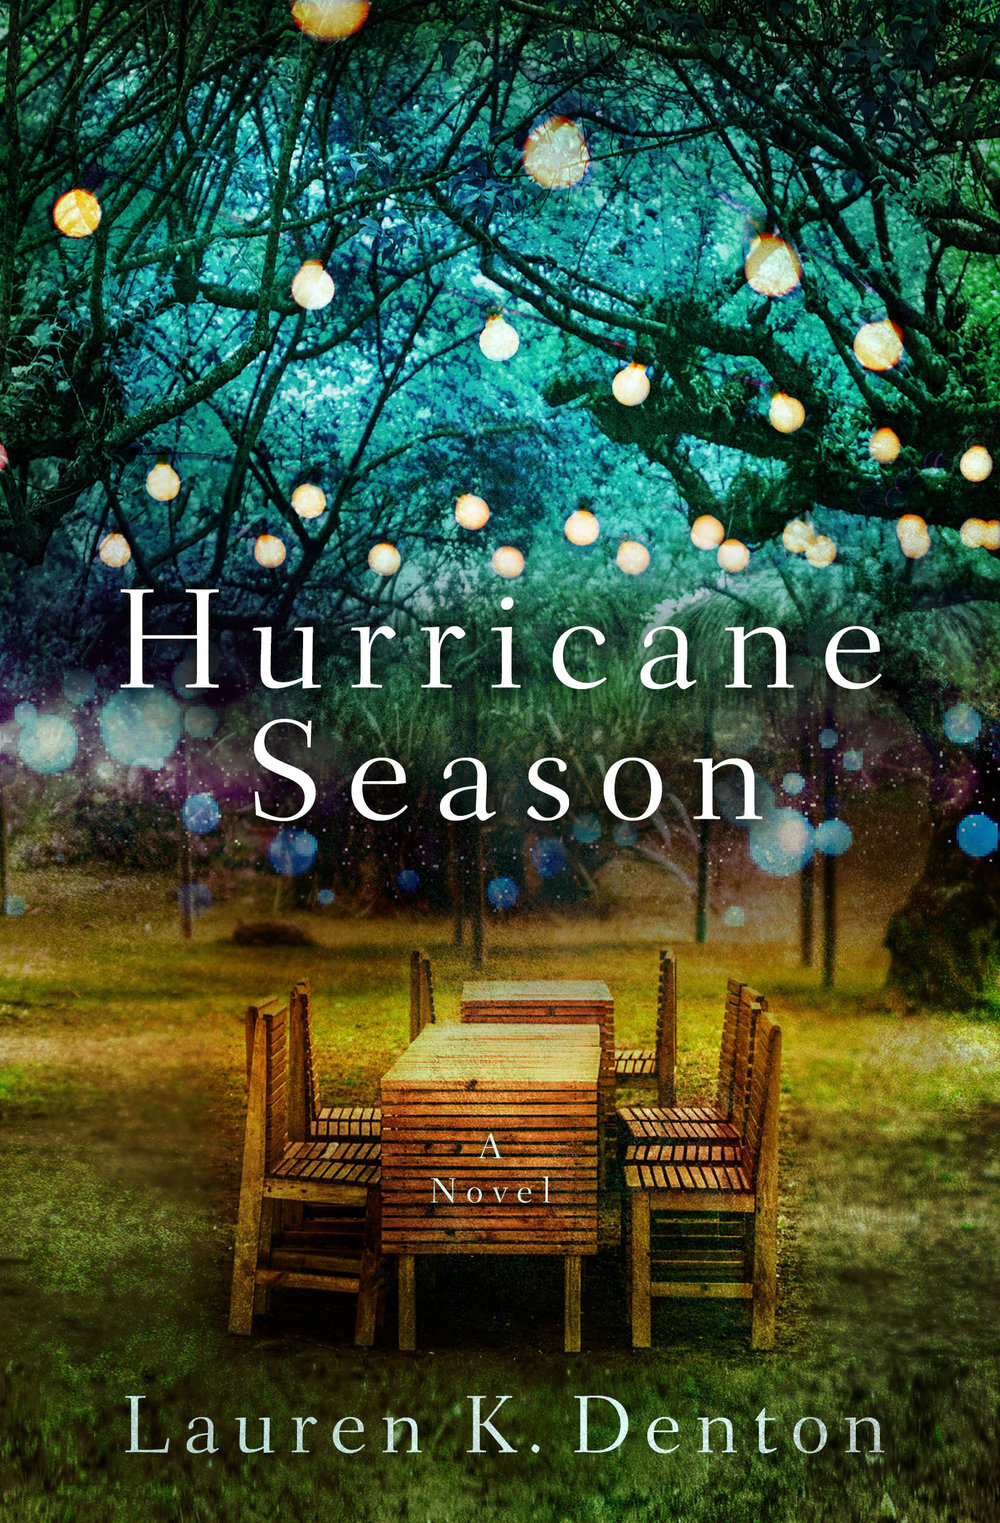 LaurenKDenton-HurricaneSeason.jpg